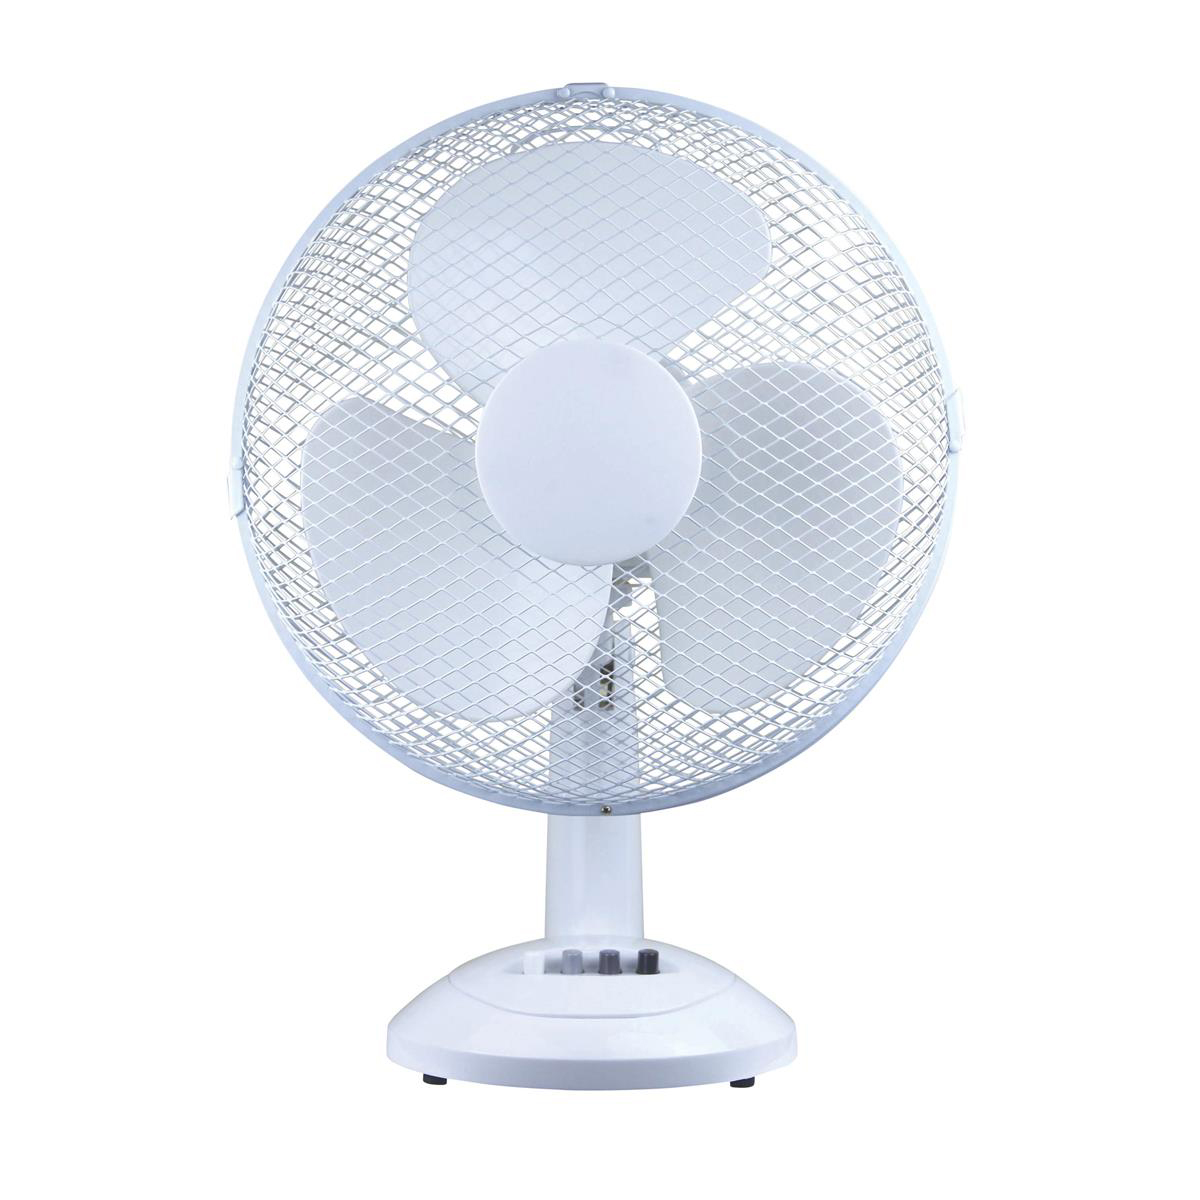 Desk Fans 5 Star Facilities Desk Fan 12 Inch 90deg Oscillating with Tilt & Lock 3-Speed H480mm Dia.305mm White